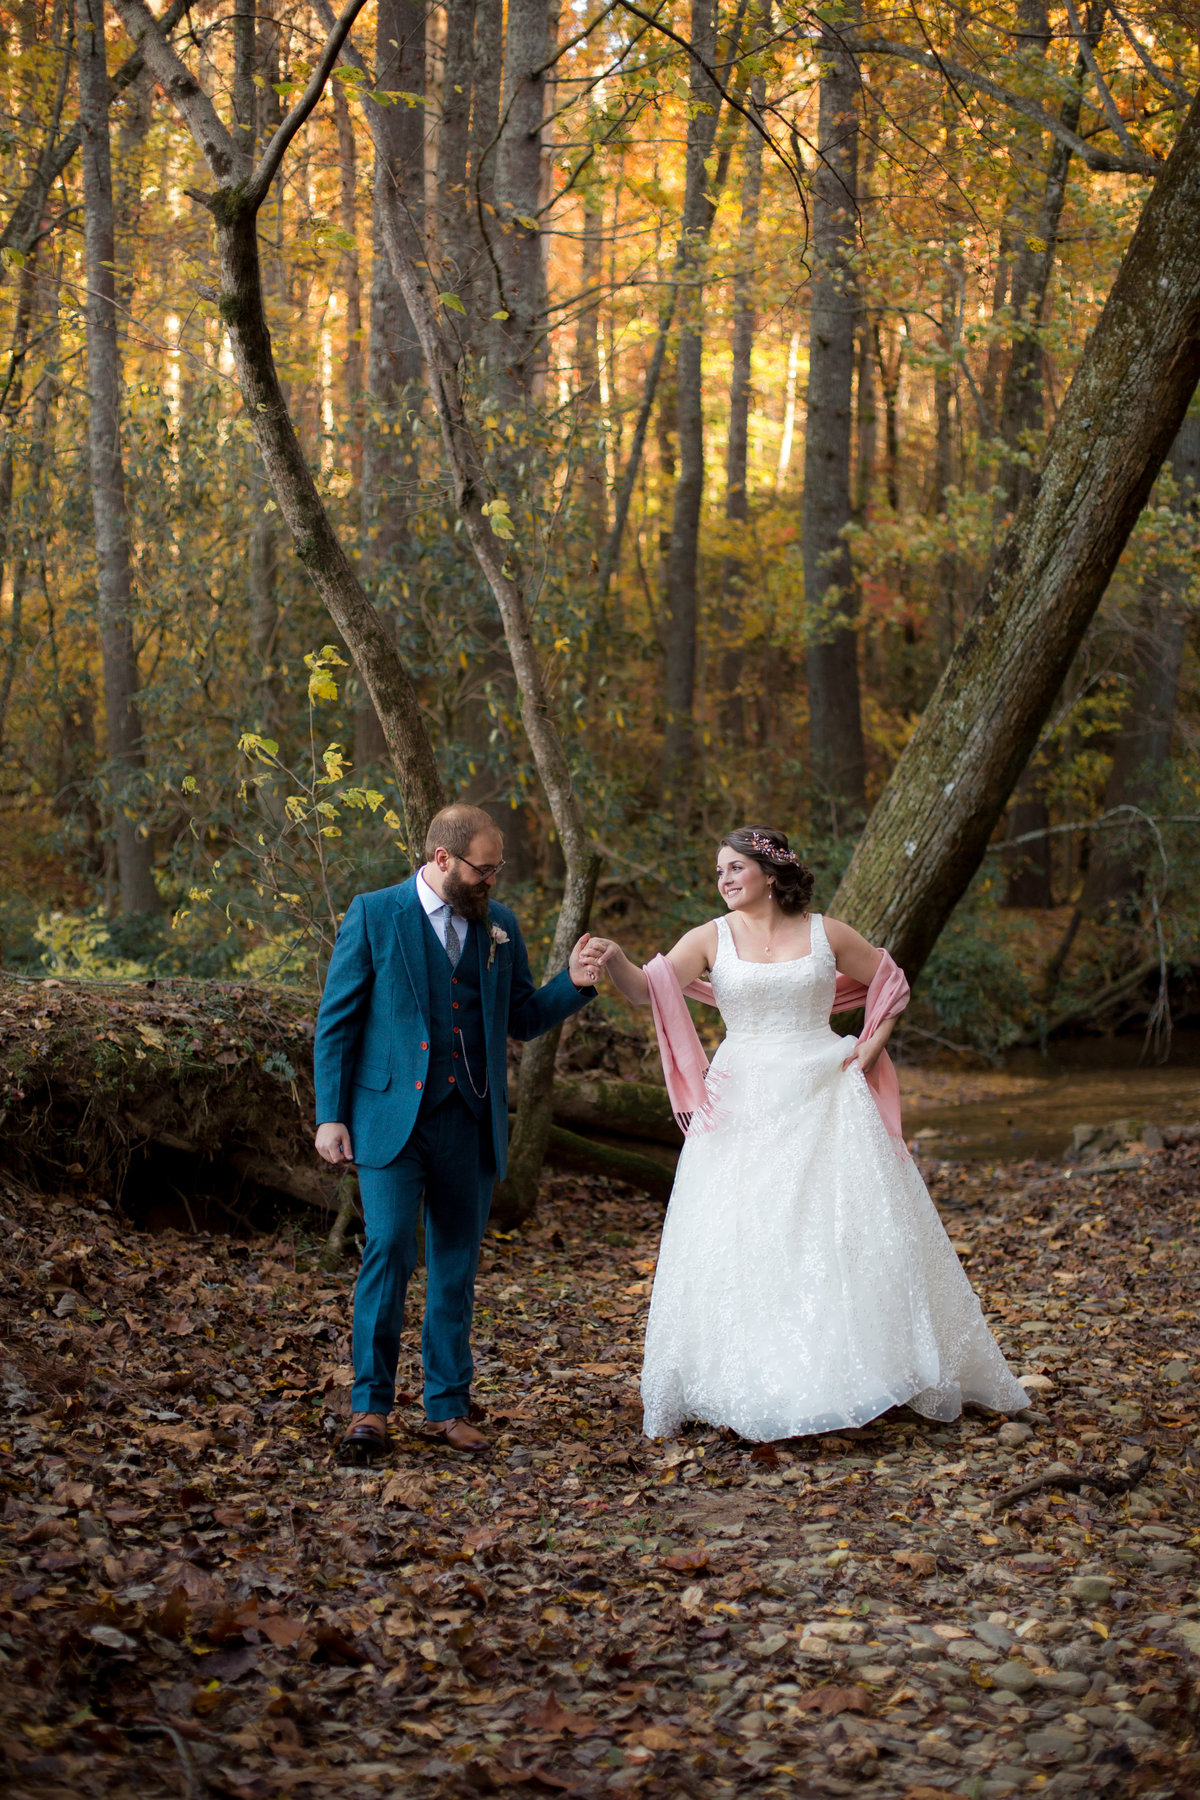 Candid photo of bride and groom taken by Atlanta wedding photographer